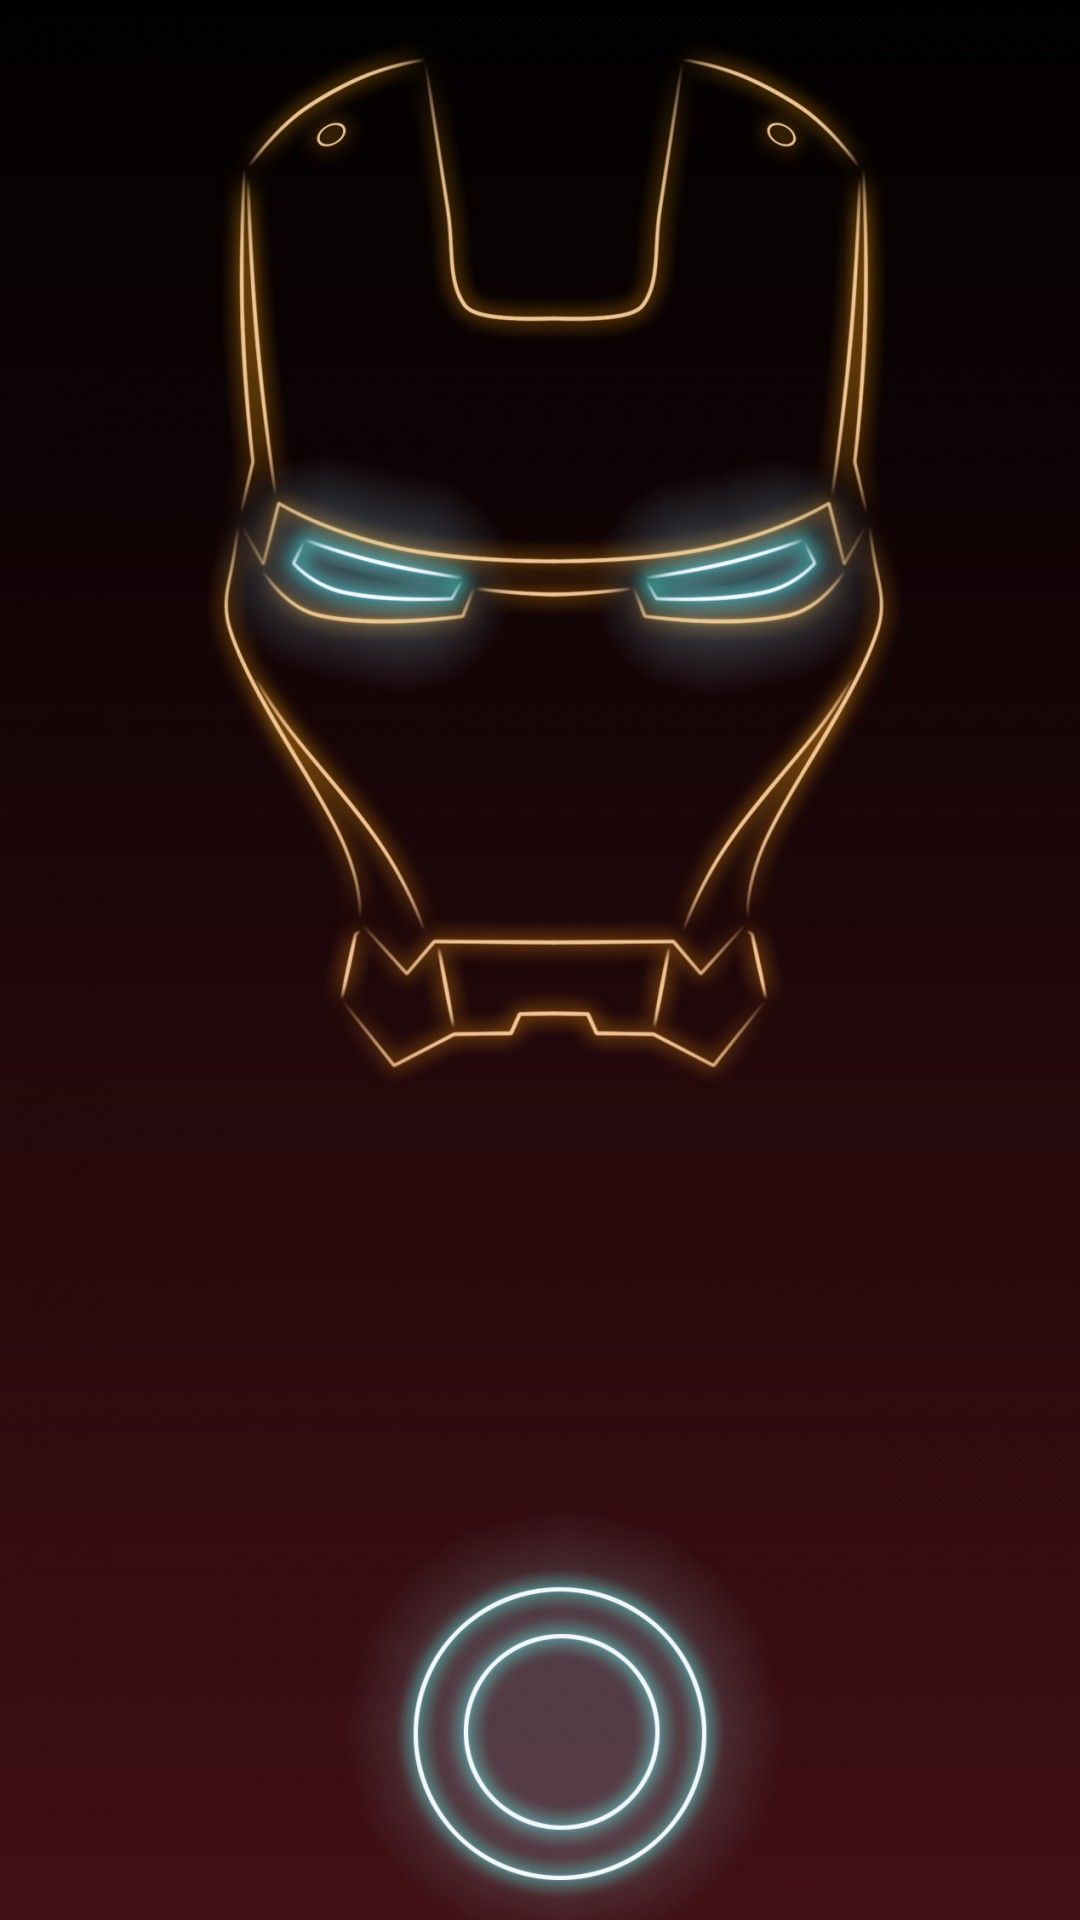 Superhero Neon Wall Lights : Iron man. Tap to see more Superheroes Glow With Neon Light Apple iPhone 6s Plus HD wallpapers ...